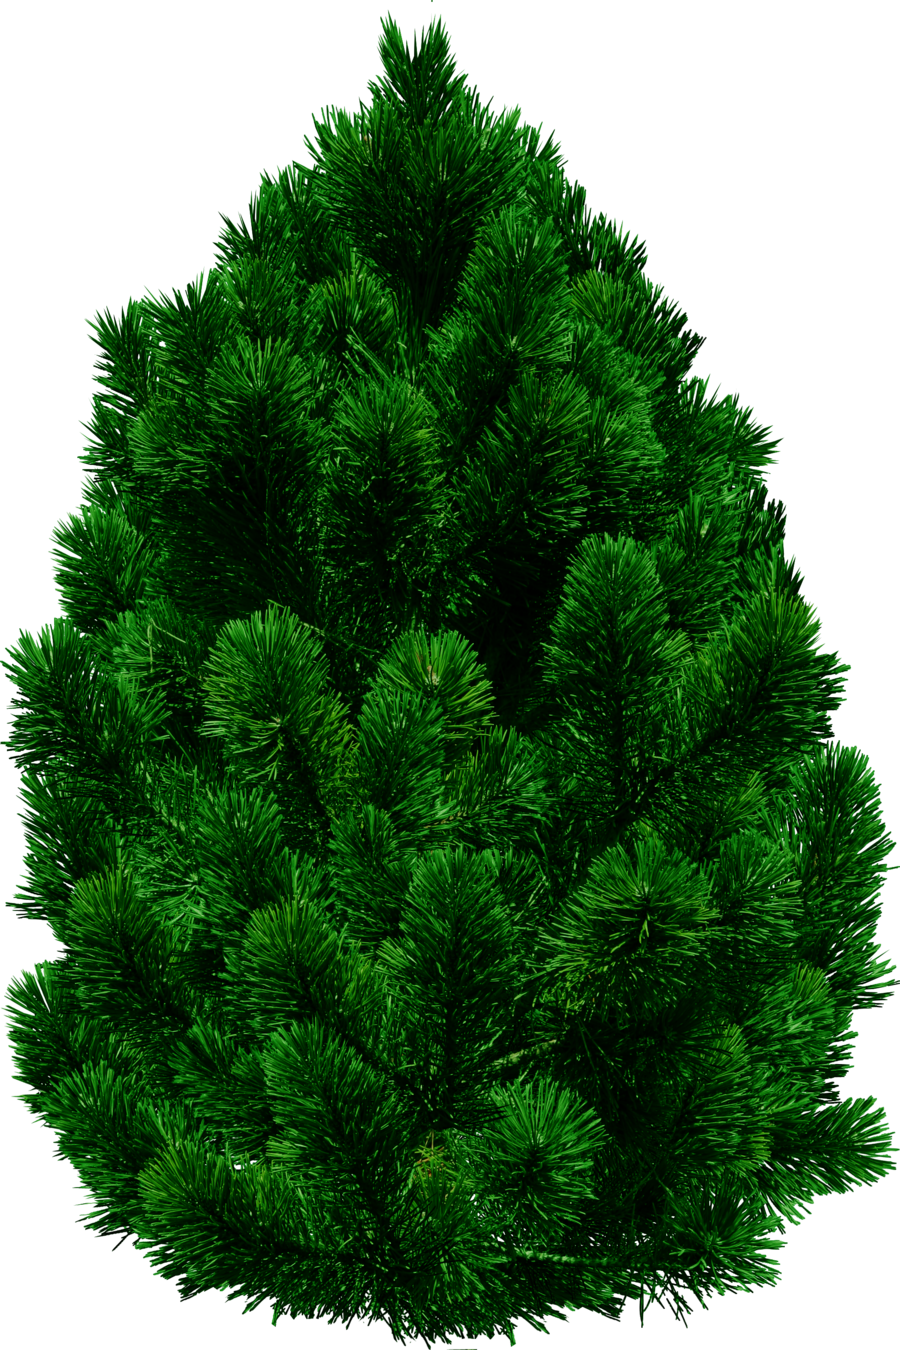 Forest pine trees png. Tree image free download